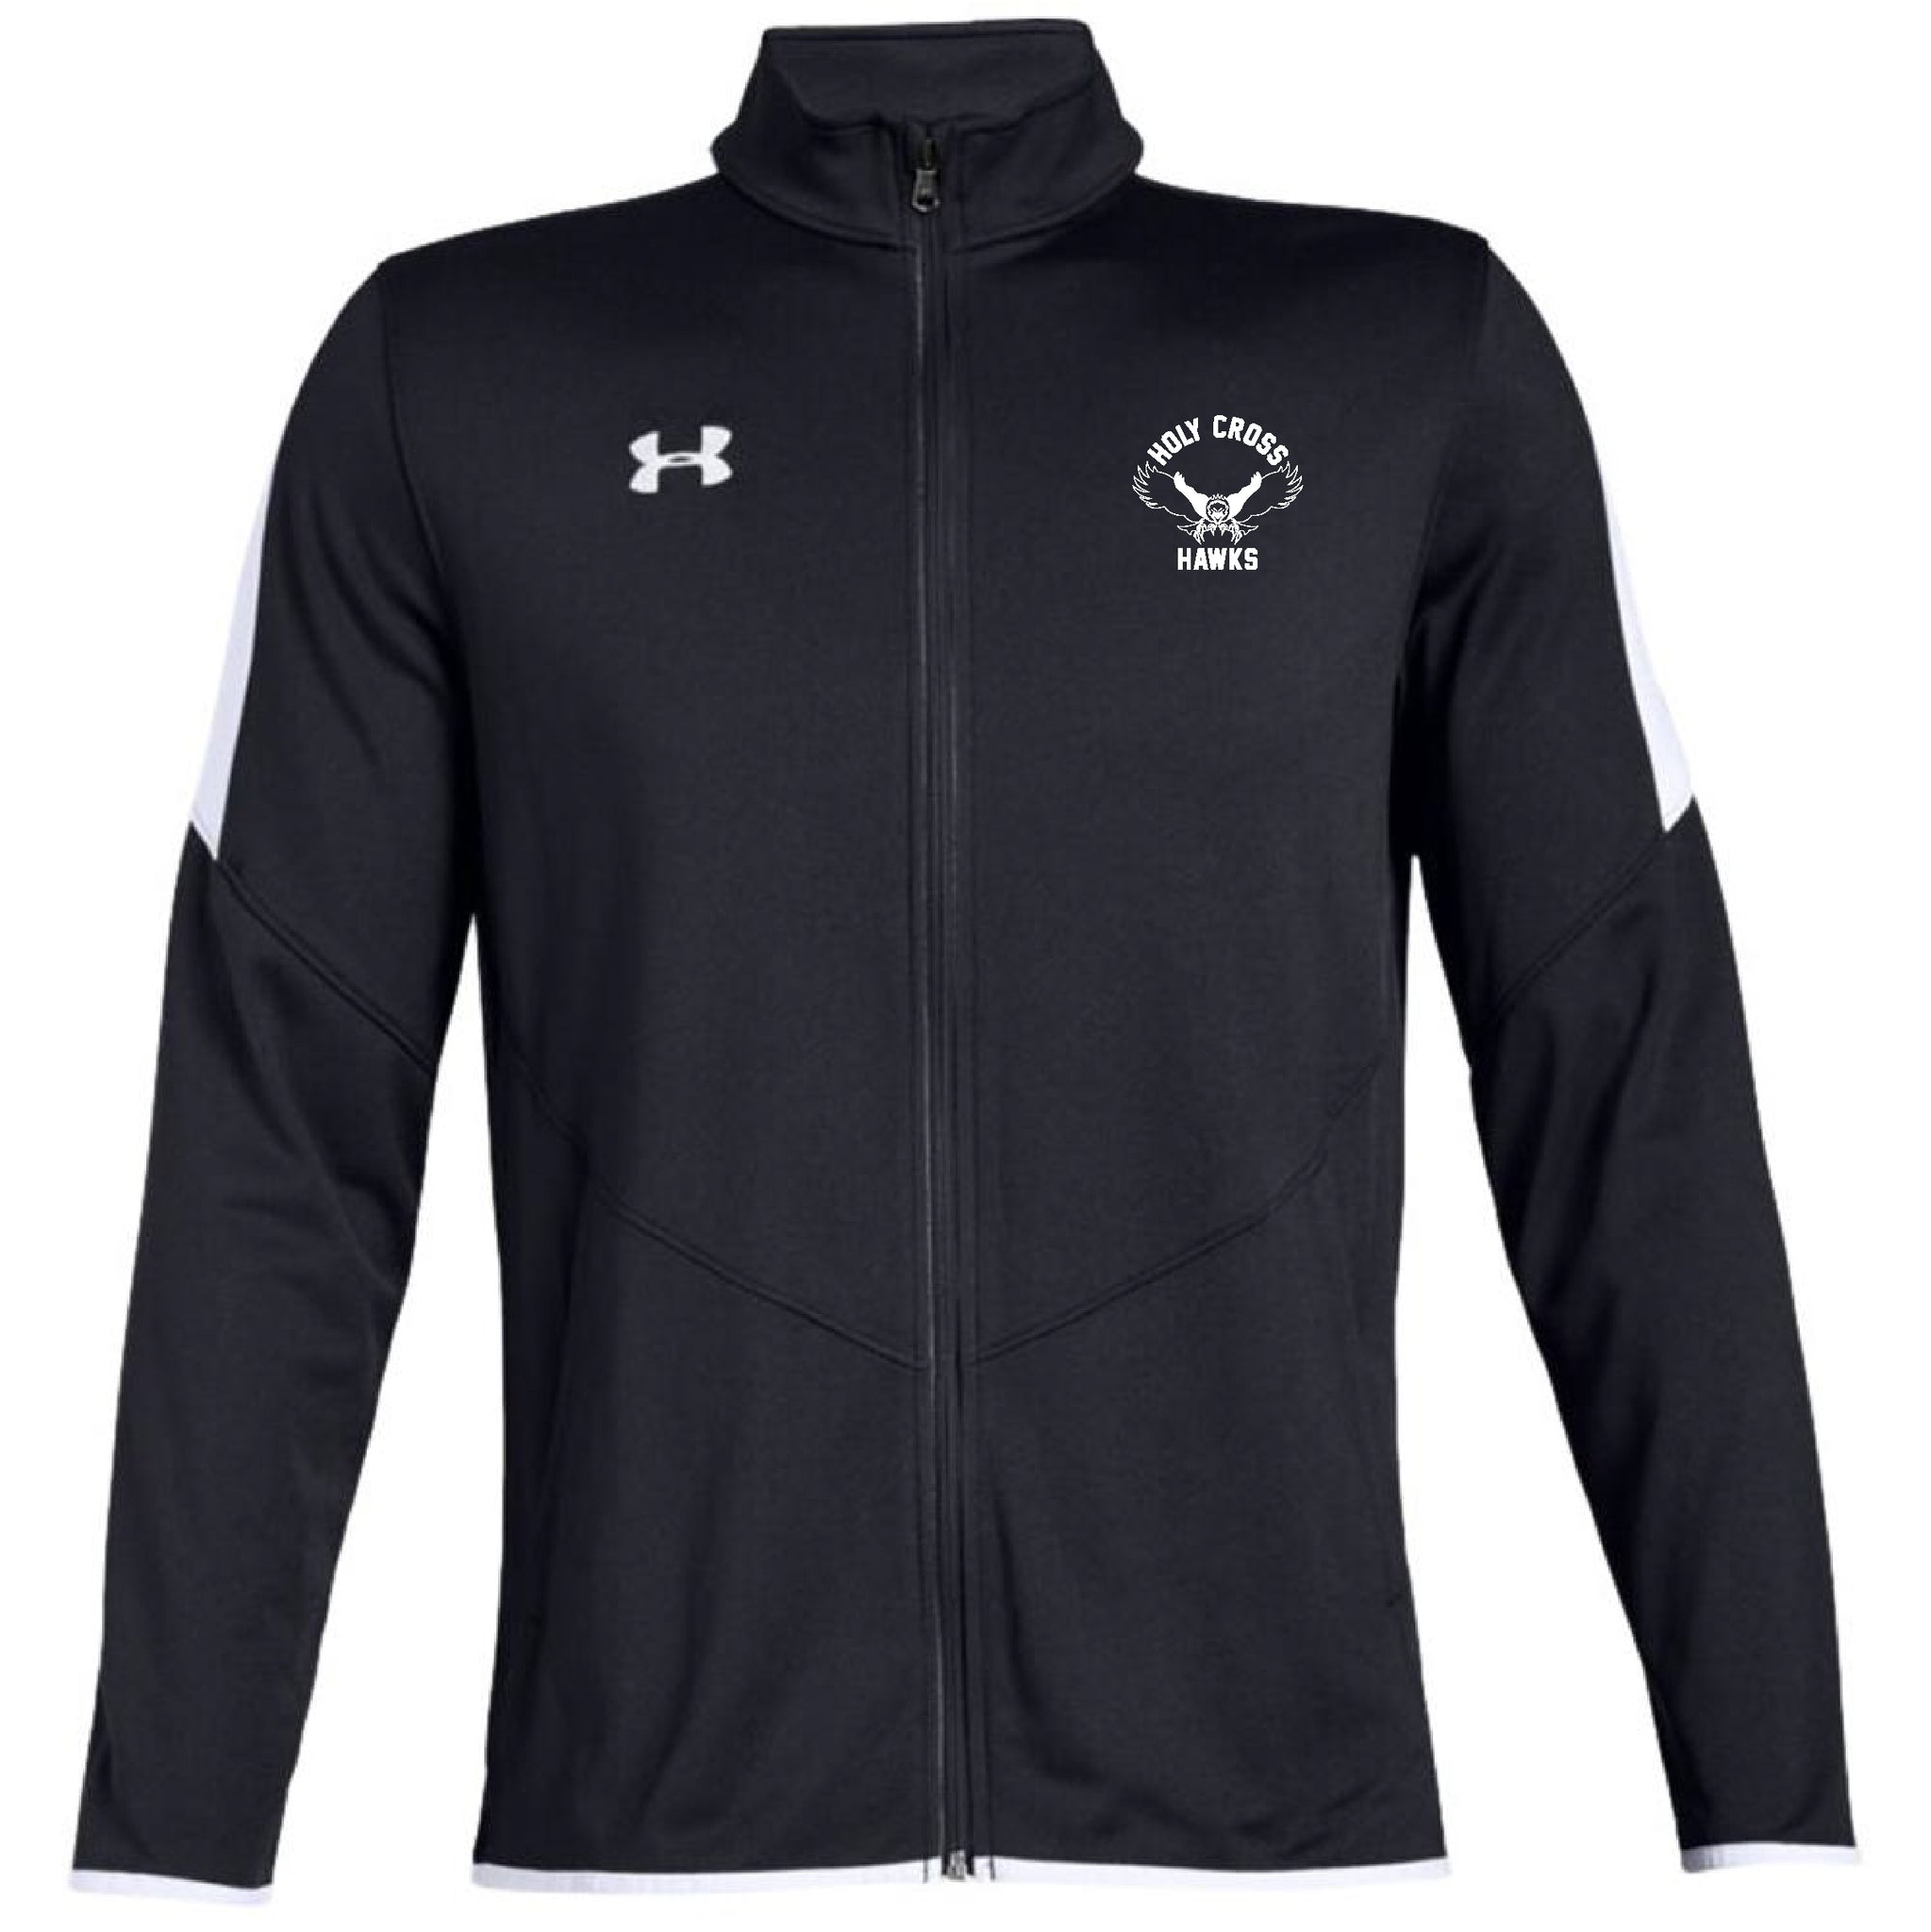 Men's UA Rival Team Jacket